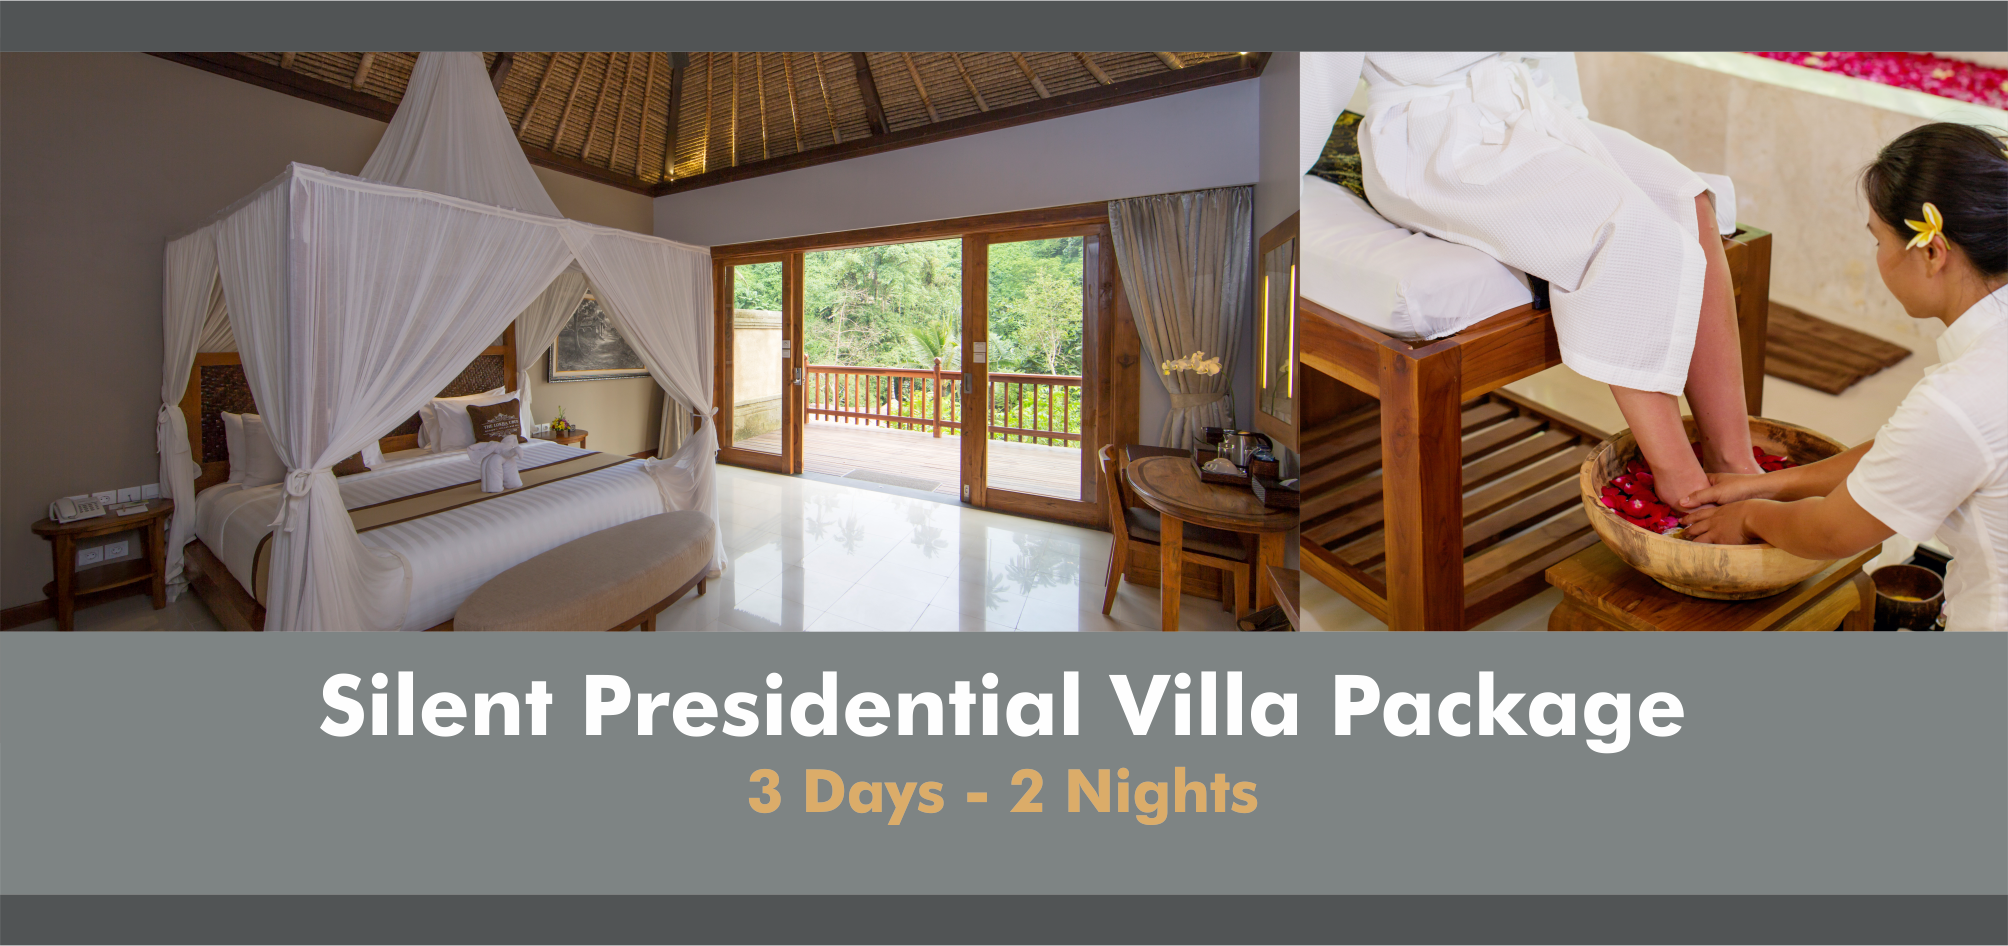 Silent Packages - Presidential Villa